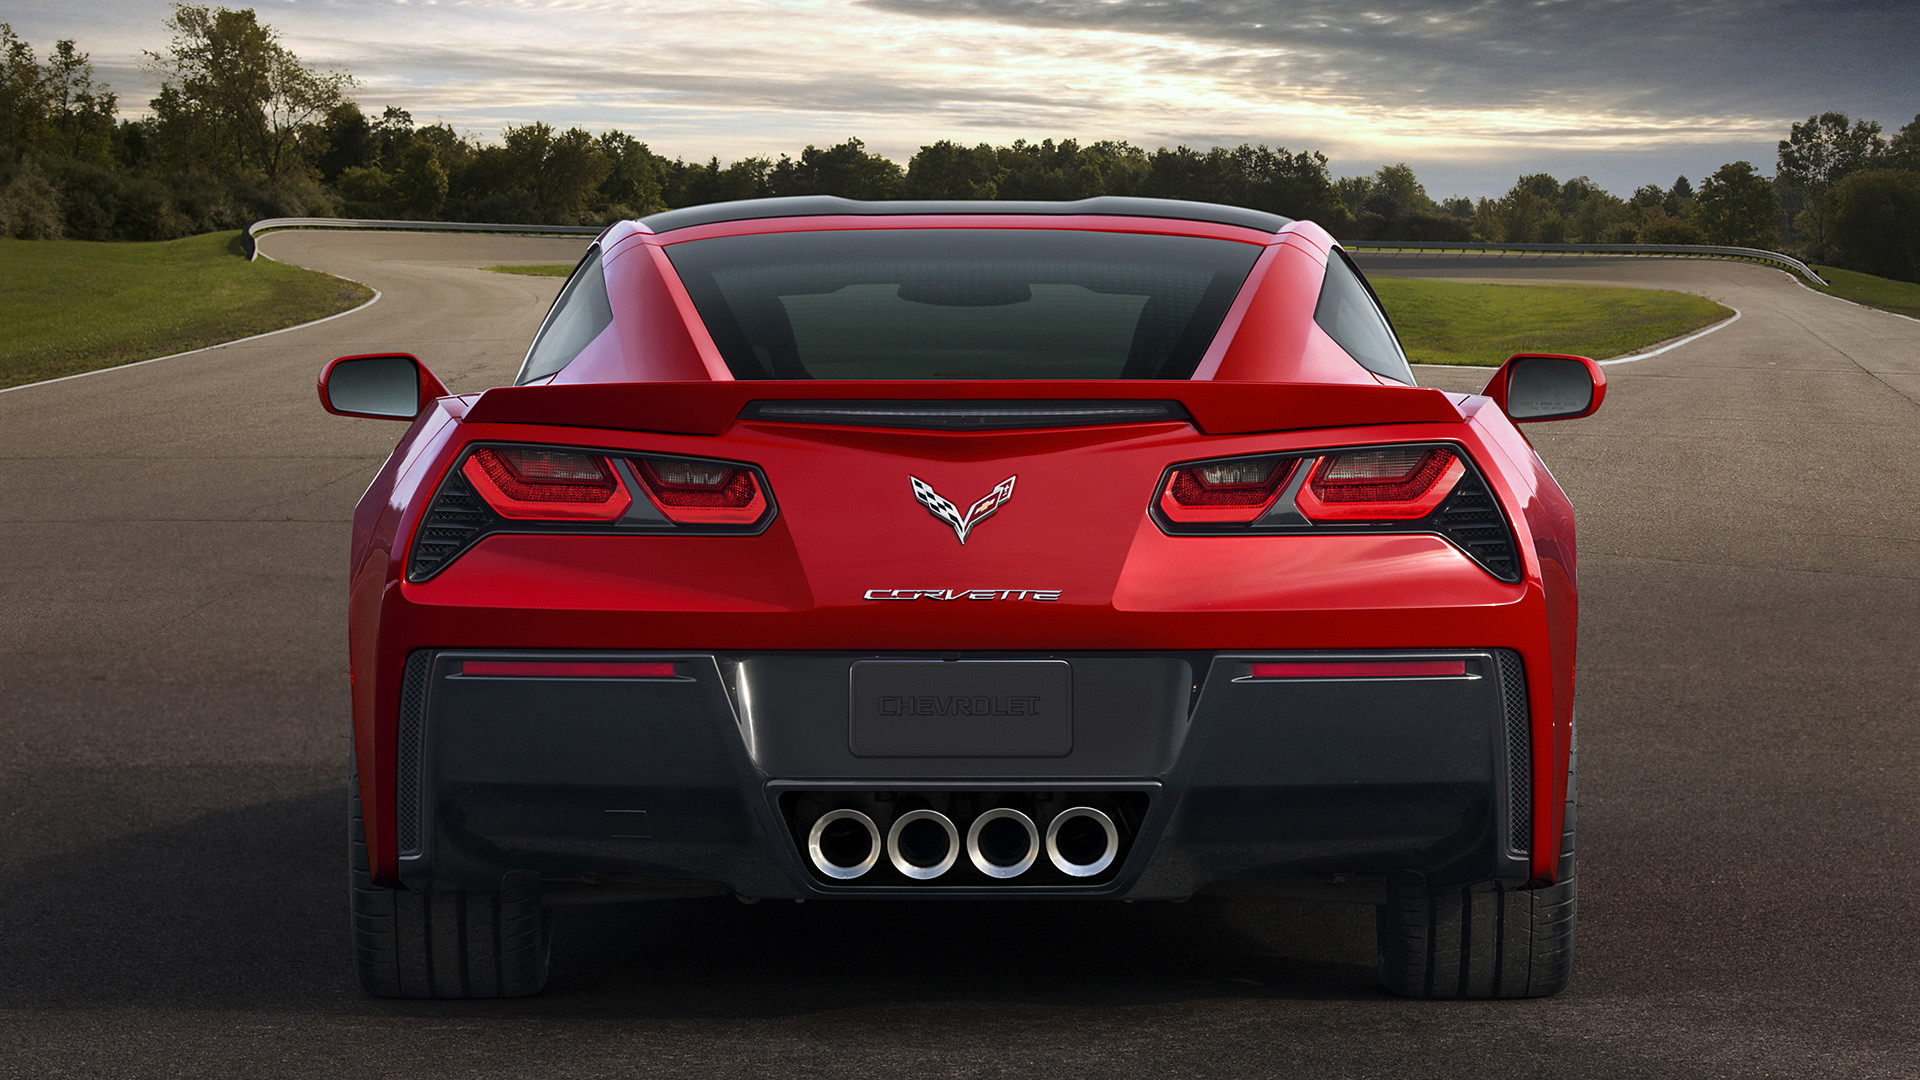 1920x1080 2014 Chevrolet Corvette Stingray picture